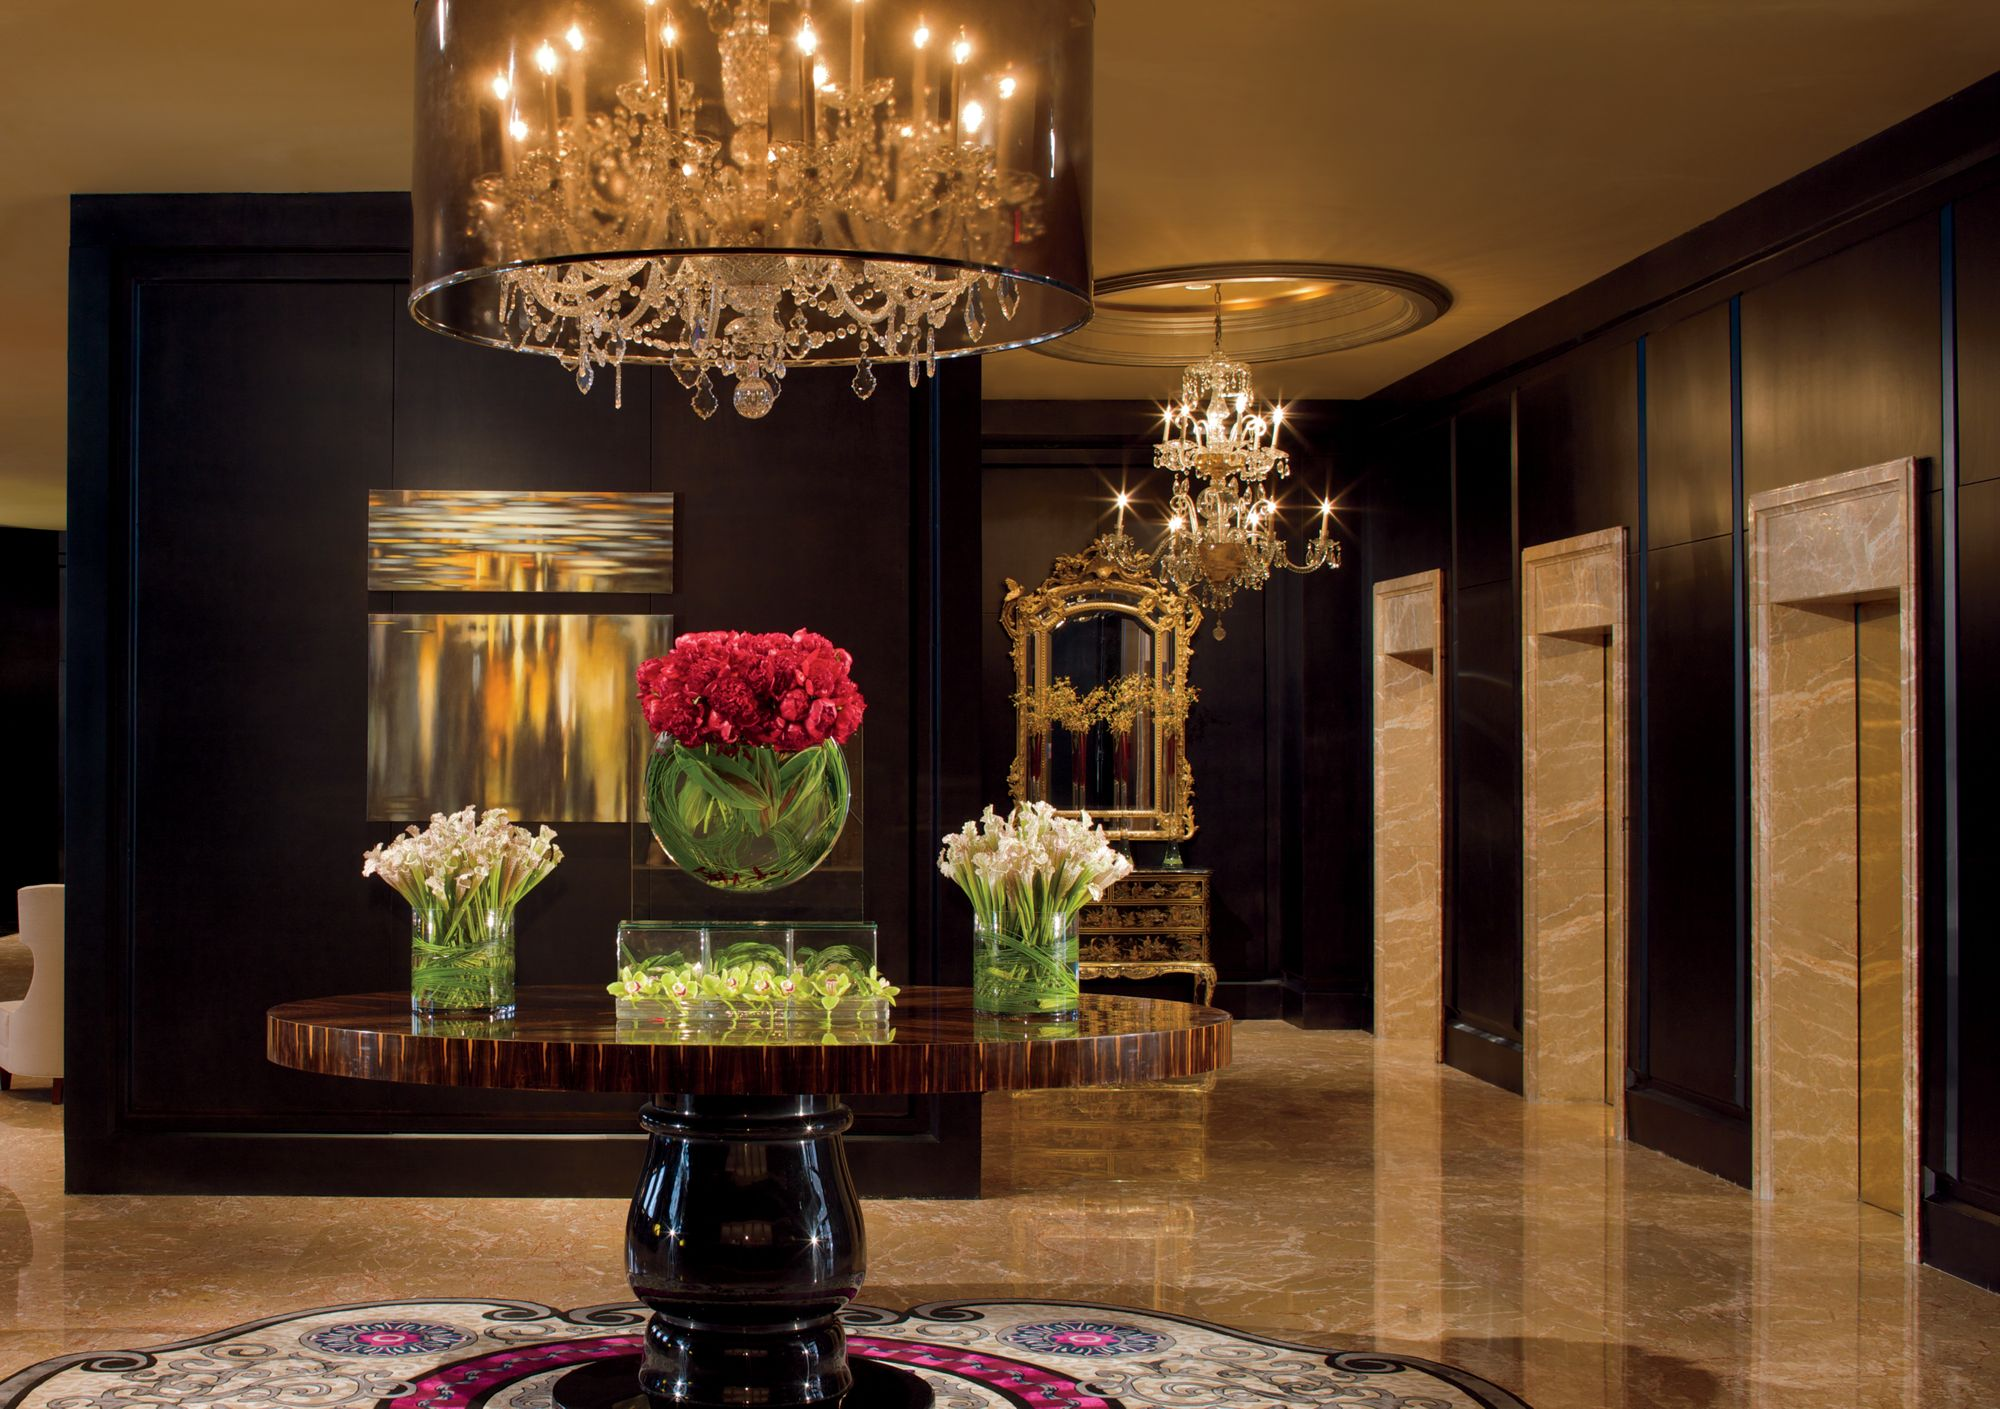 Guests Can Stay in a Pure Room at the Ritz Carlton Atlanta